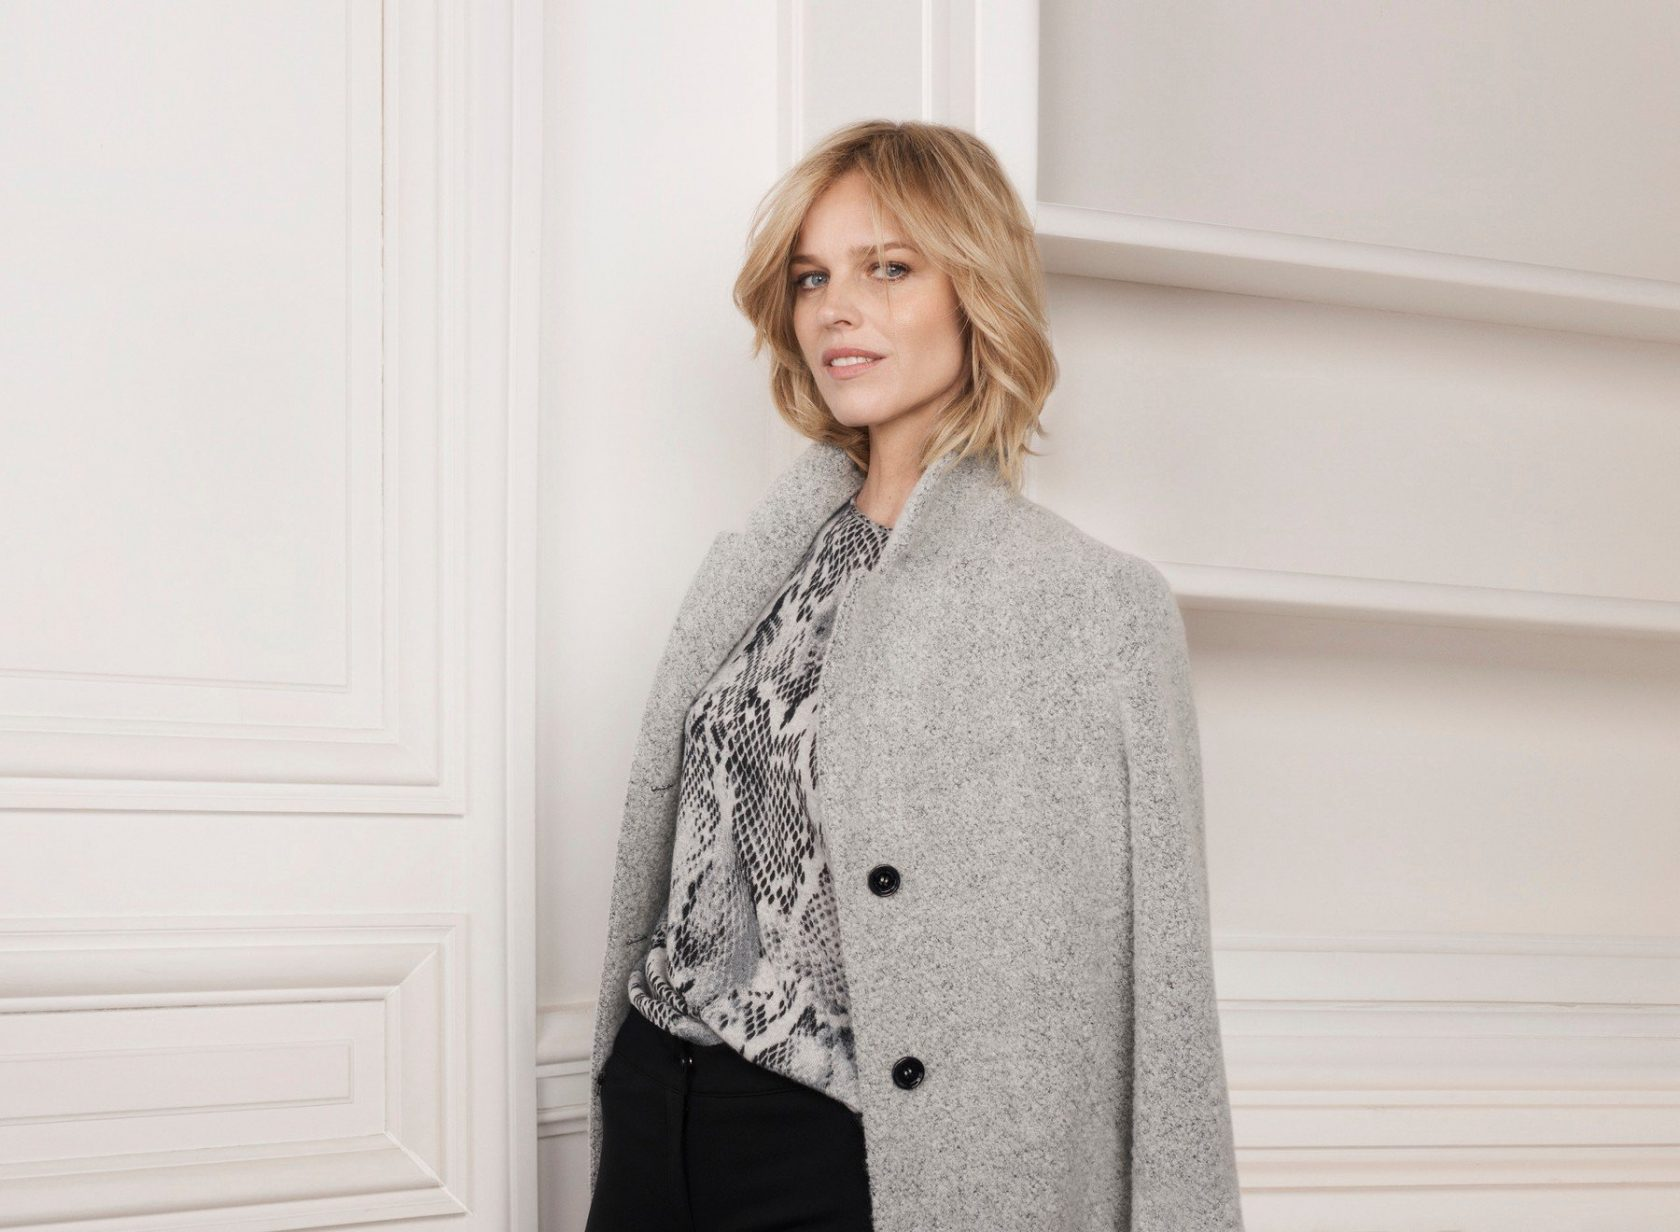 NOT FOR COVER USAGE. Eva Herzigova wearing GERRY WEBER - the New Capsule Collection, Image: 352042357, License: Rights-managed, Restrictions: FOR EDITORIAL USE ONLY. NOT FOR COVER USAGE., Model Release: no, Credit line: Profimedia, TEMP Camerapress